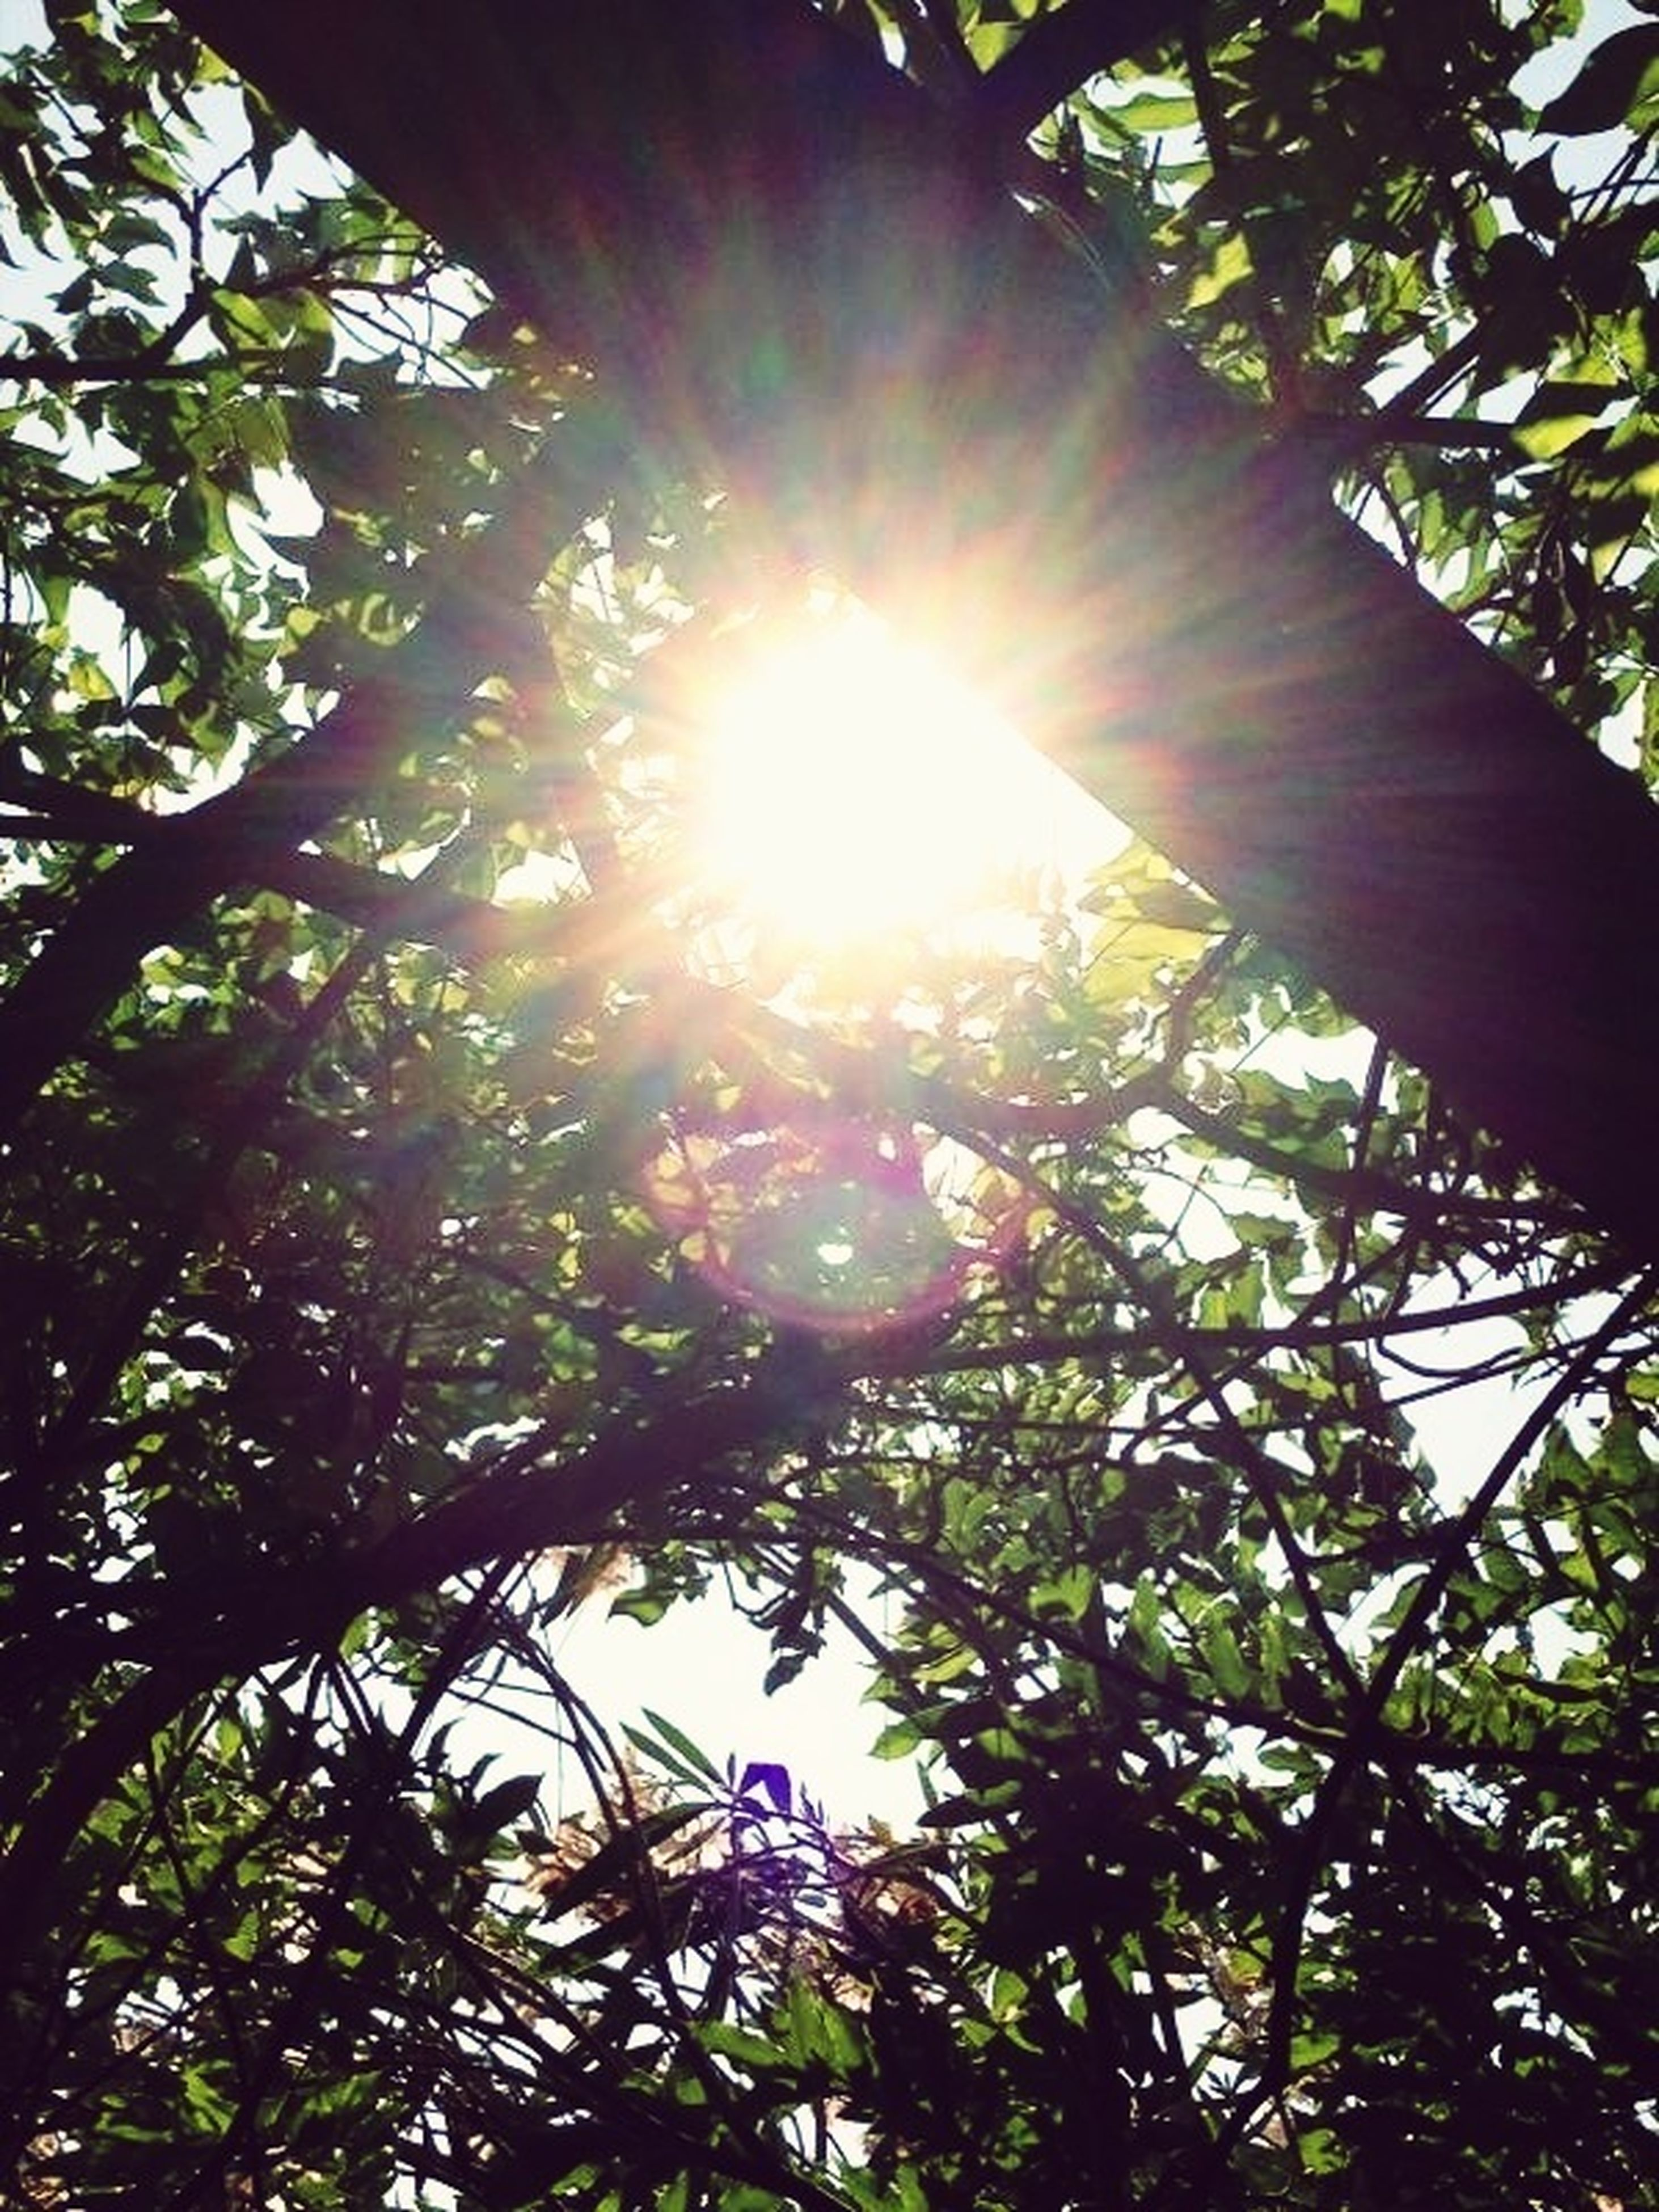 tree, sun, low angle view, sunbeam, sunlight, growth, branch, lens flare, nature, beauty in nature, tranquility, sunny, sky, bright, day, outdoors, green color, leaf, no people, scenics